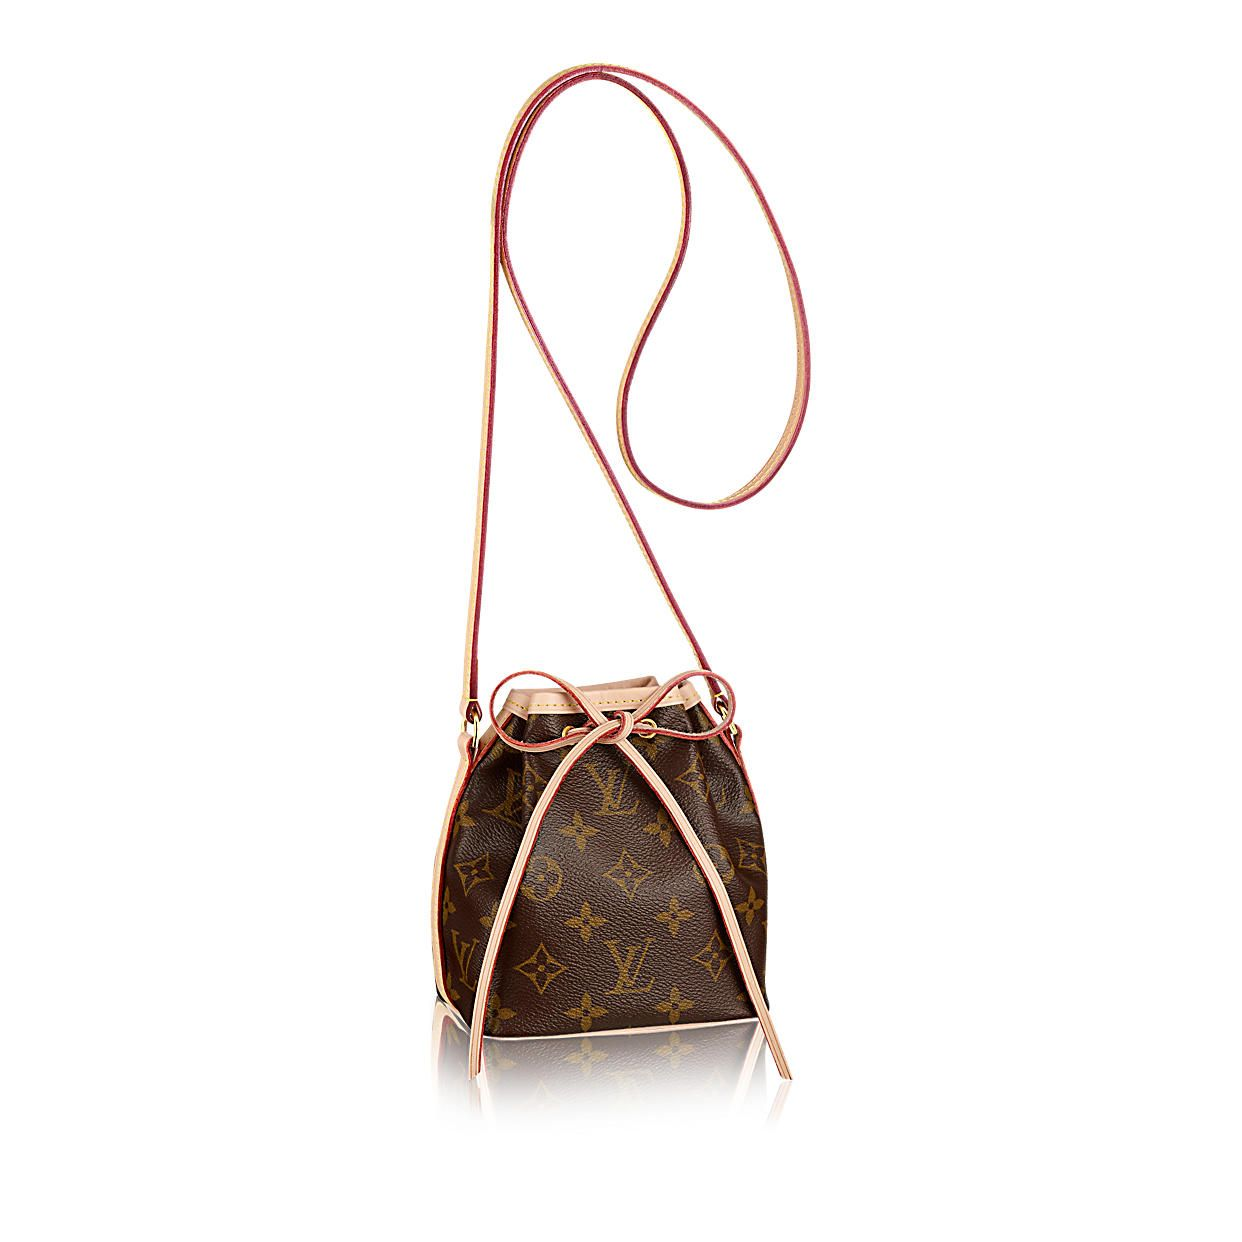 Discover Louis Vuitton Nano Noe  The ultra-feminine Nano Noé in iconic Monogram  canvas is the ideal way to carry your daily essentials. 8e8b1232f4206